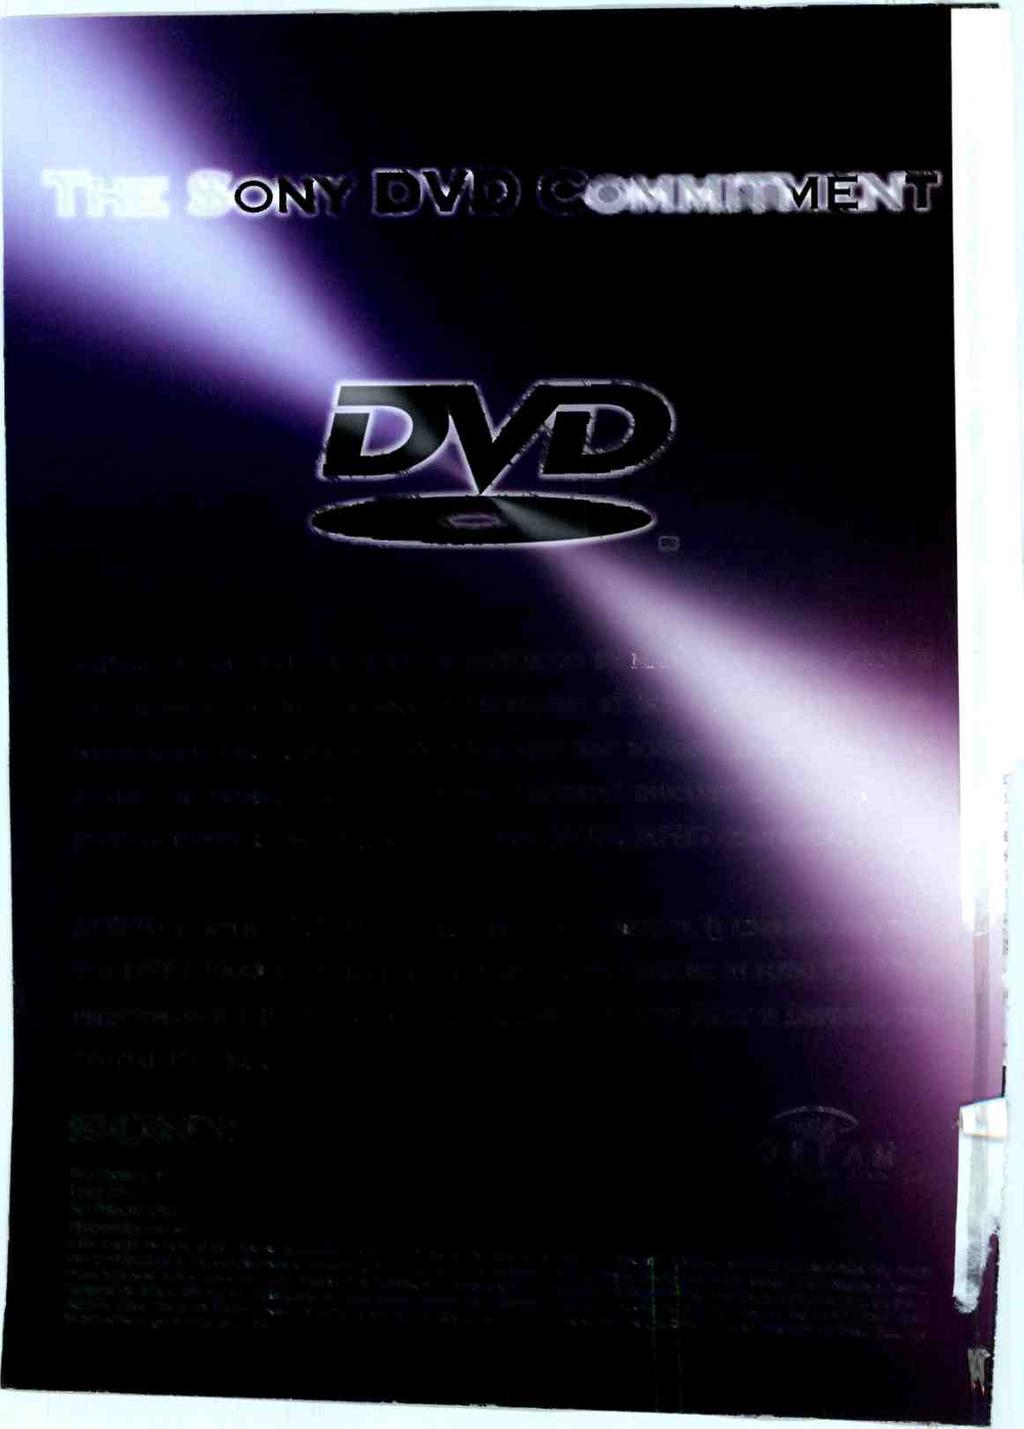 , THE SO NY ALTHOUGH THE DVD STANDARD IS SUPPORTED BY ; THE TECHNOLOGY WAS ORIGINALLY DEVELOPED BY SO MAT'S MODULATION, ERROR CORRECTION AND DISC BONDIN MUCH OF s!